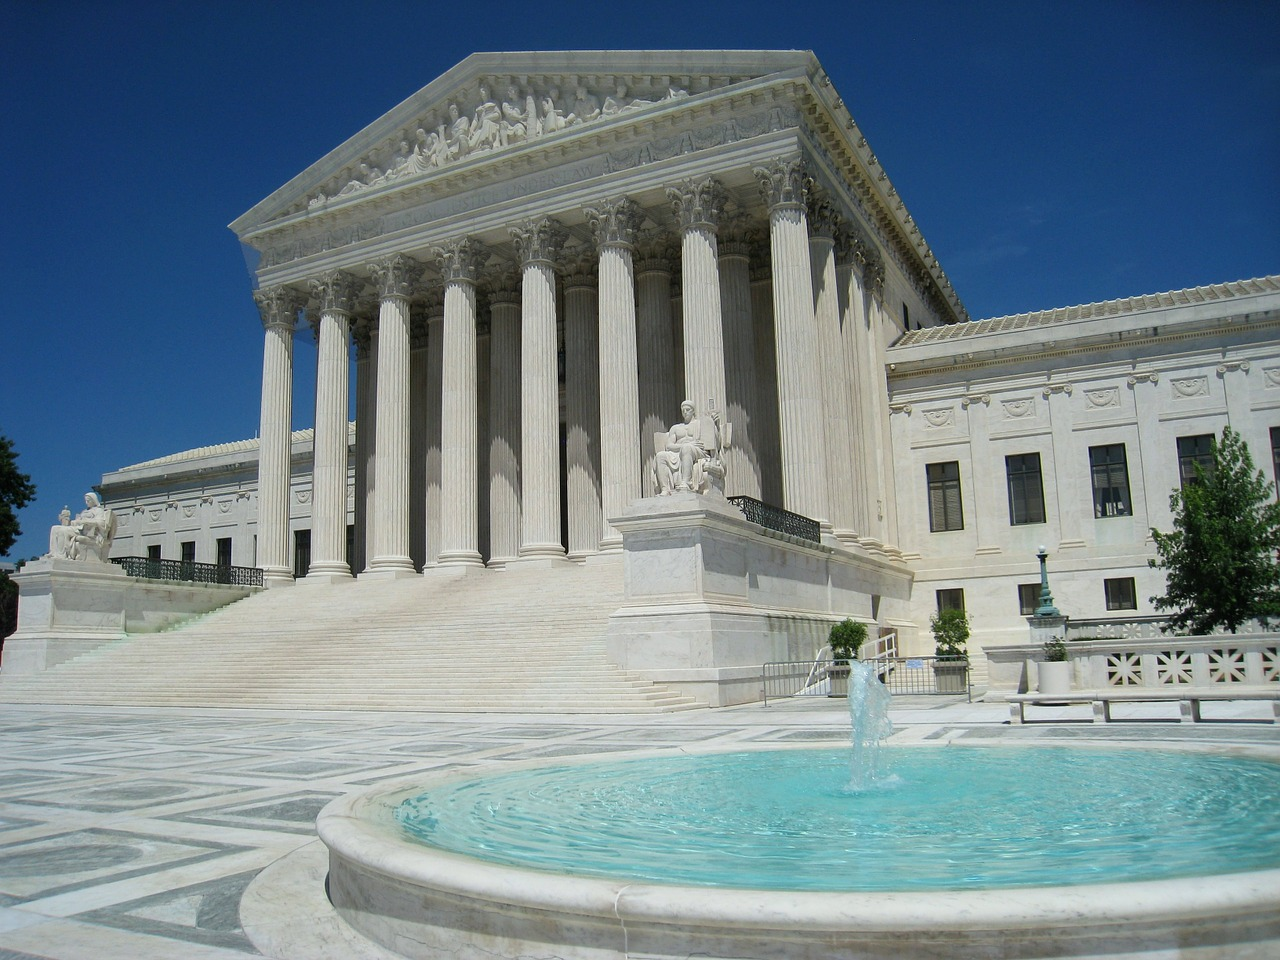 Federal court uses Supreme Court opinion to uphold Arkansas abortion restrictions